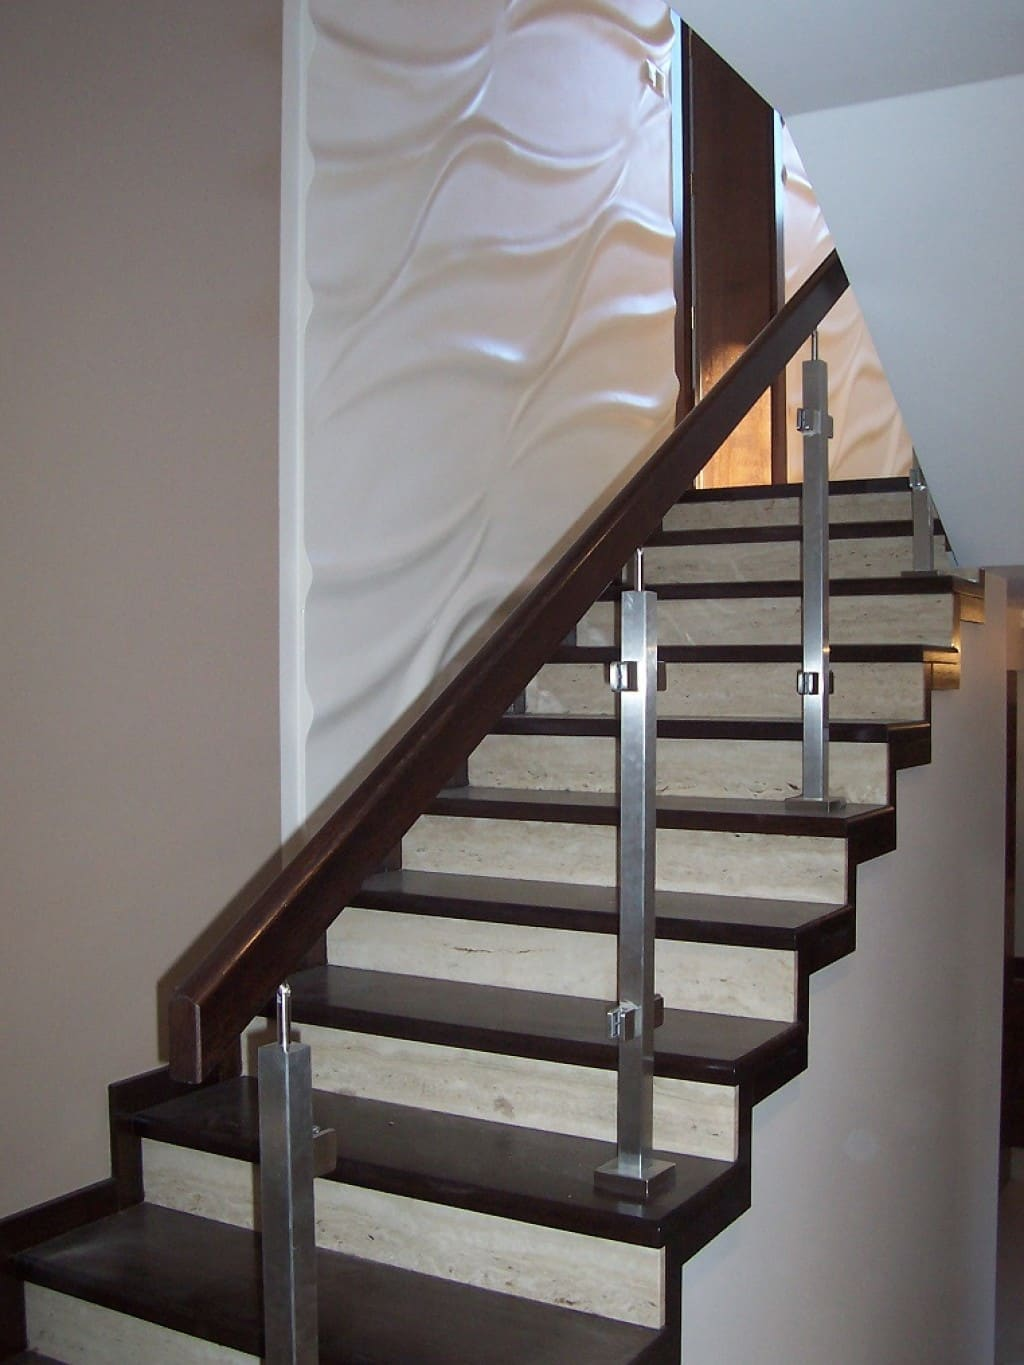 Blog - How to design interior stairs?